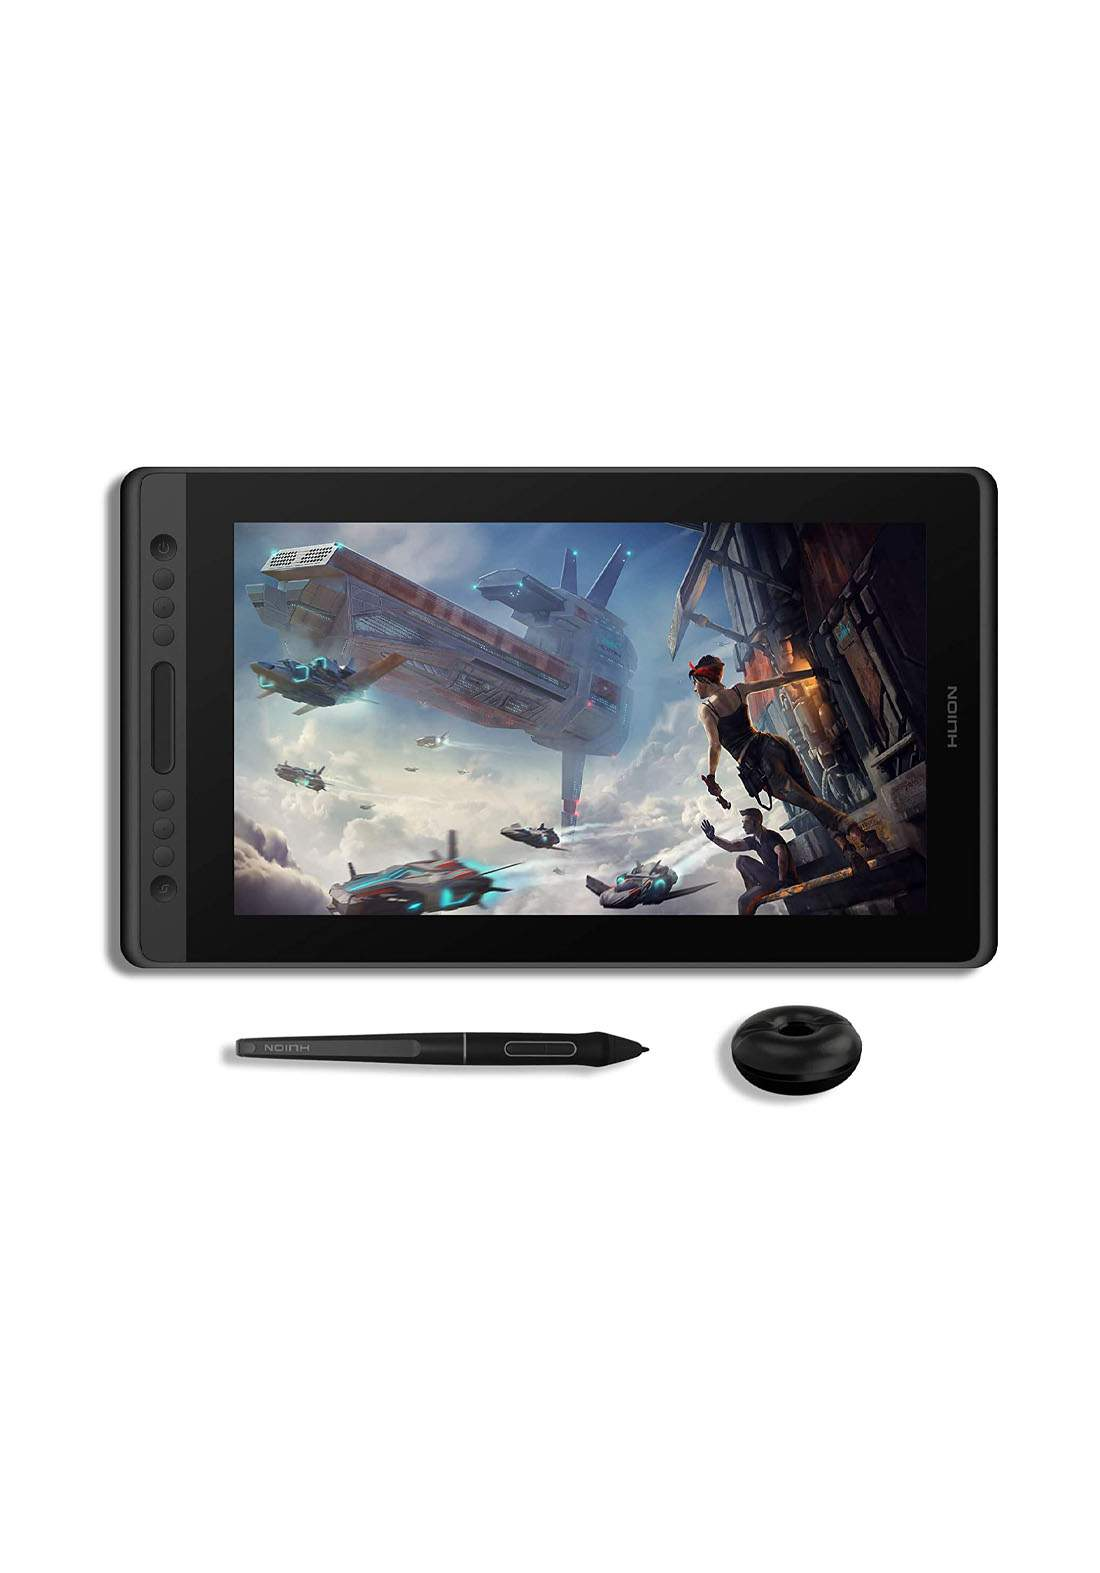 Huion Kamvas Pro 16 Drawing Monitor IPS Full-Laminated Graphic Tablets with Screen Battery-Free تابلت رسم وكتابة